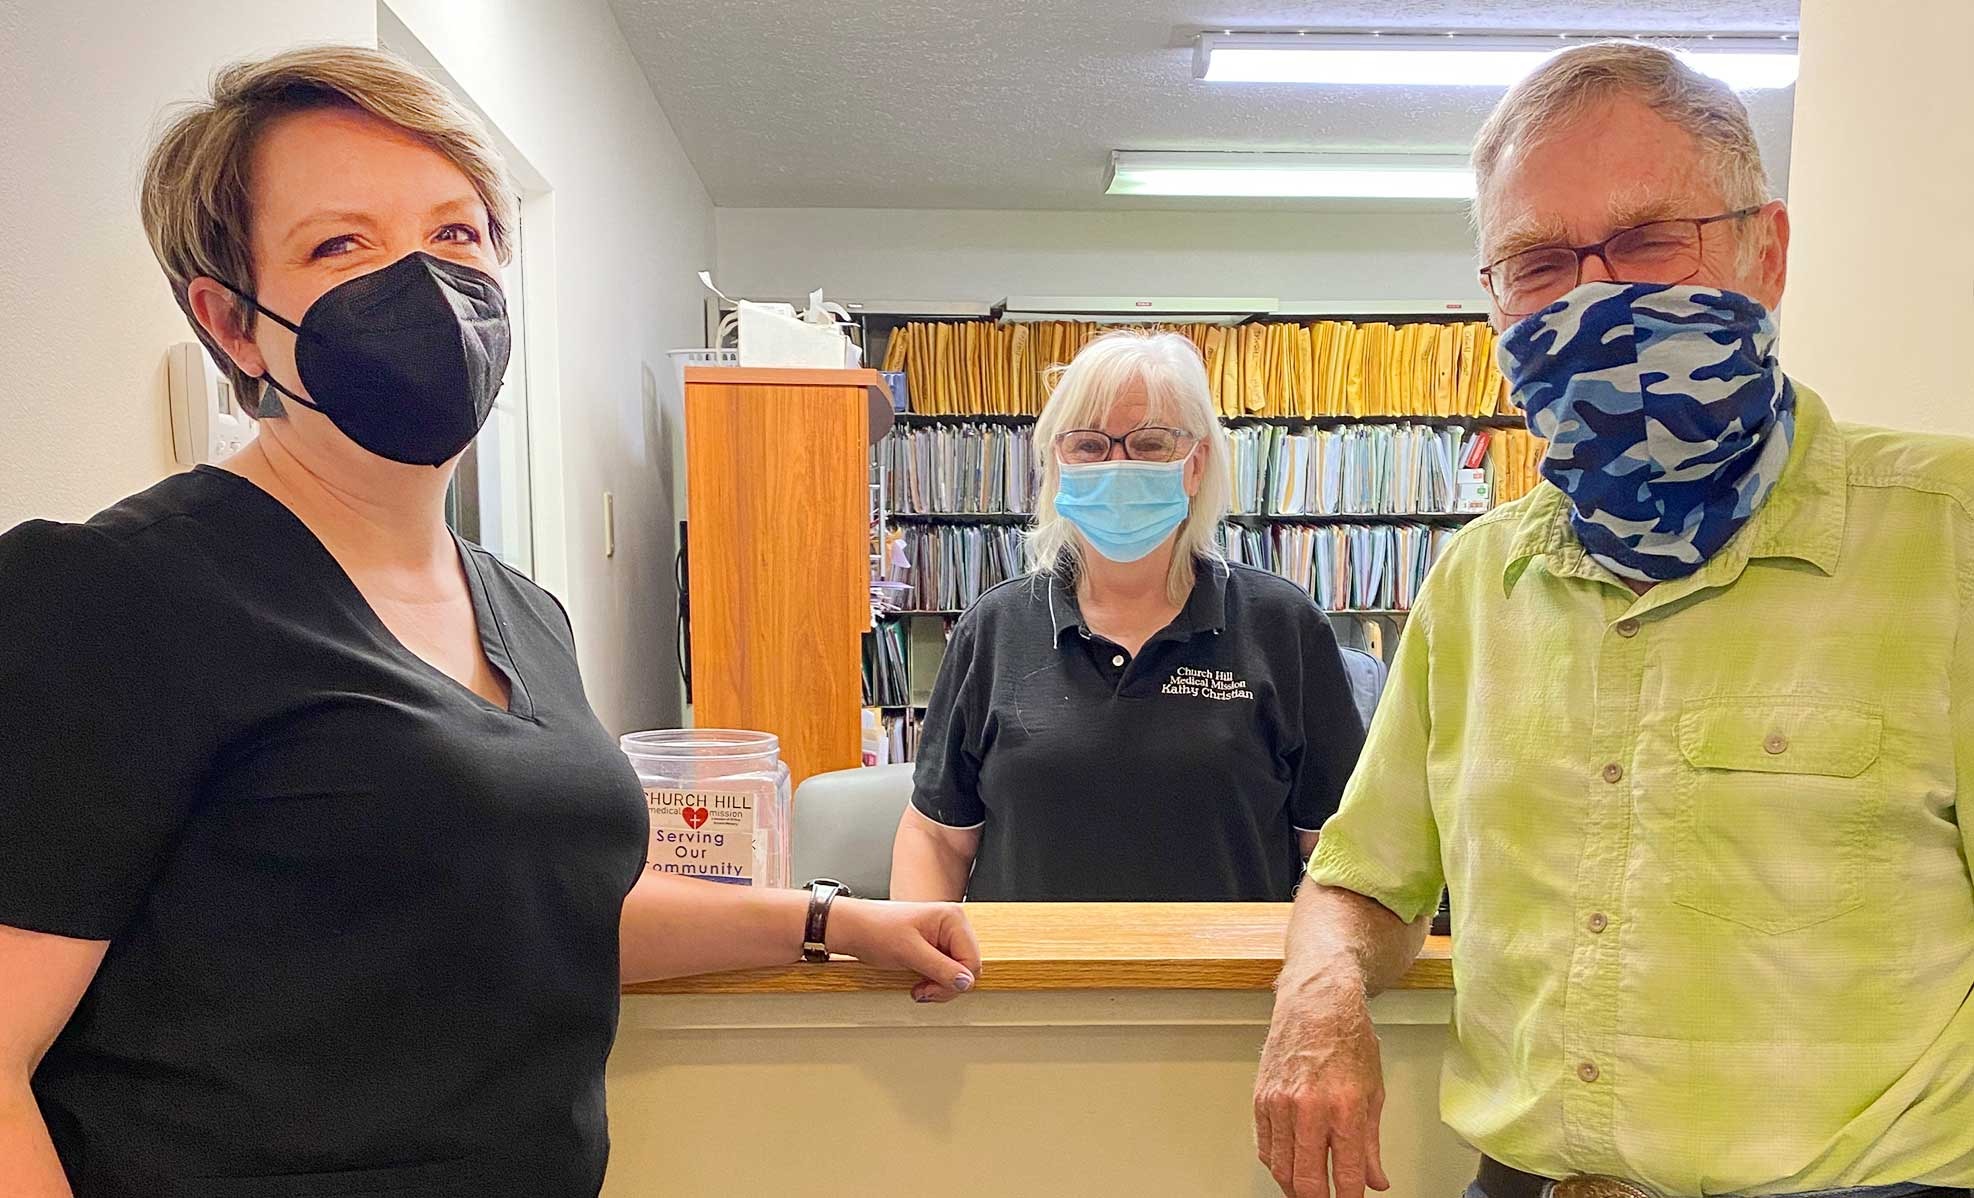 Dr. Dove and team